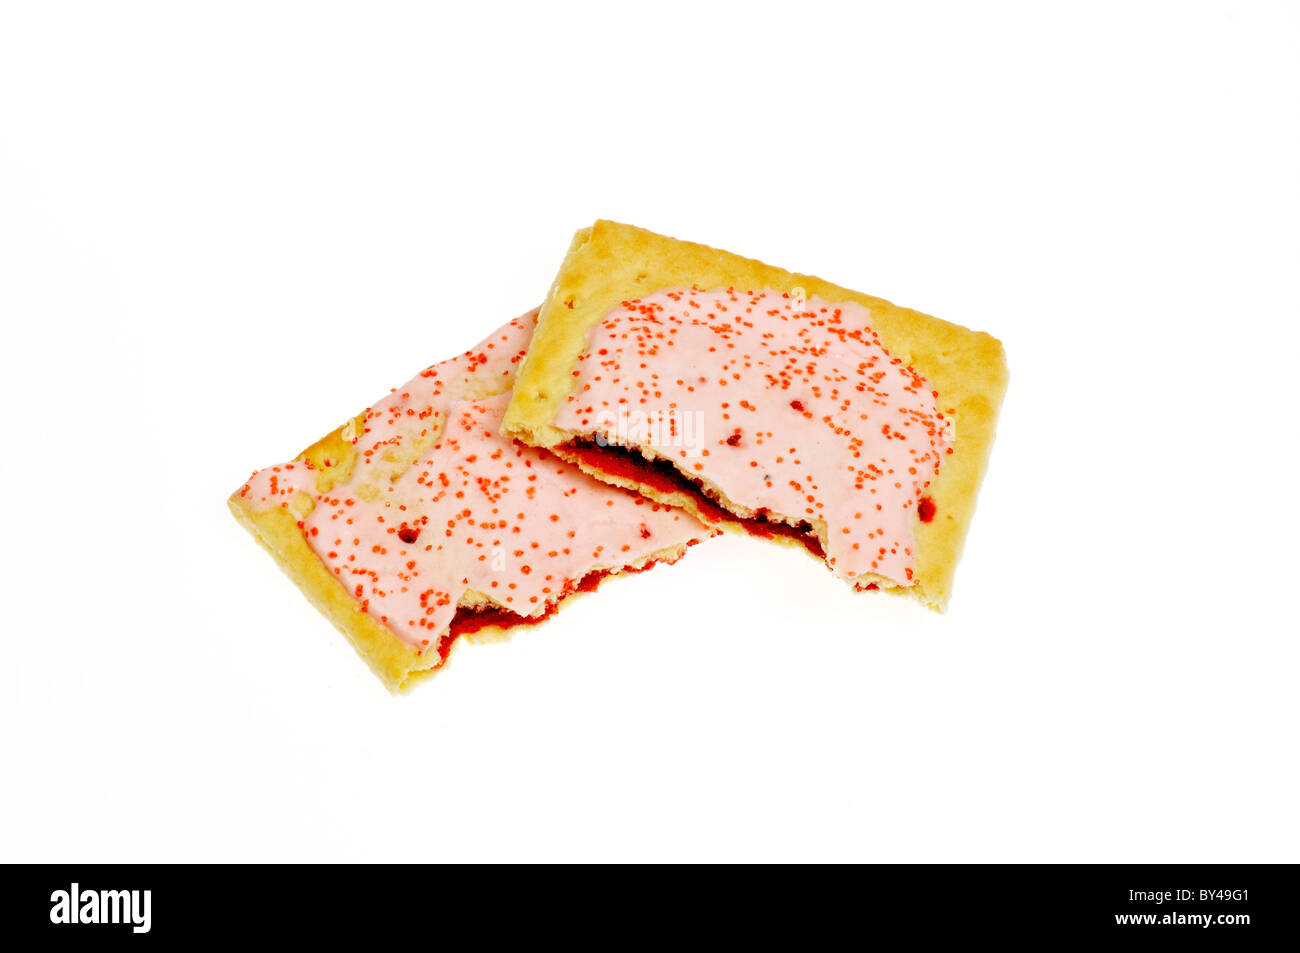 Cherry frosted pop-tarts broken in half with cherry filling on white background, cutout. Stock Photo